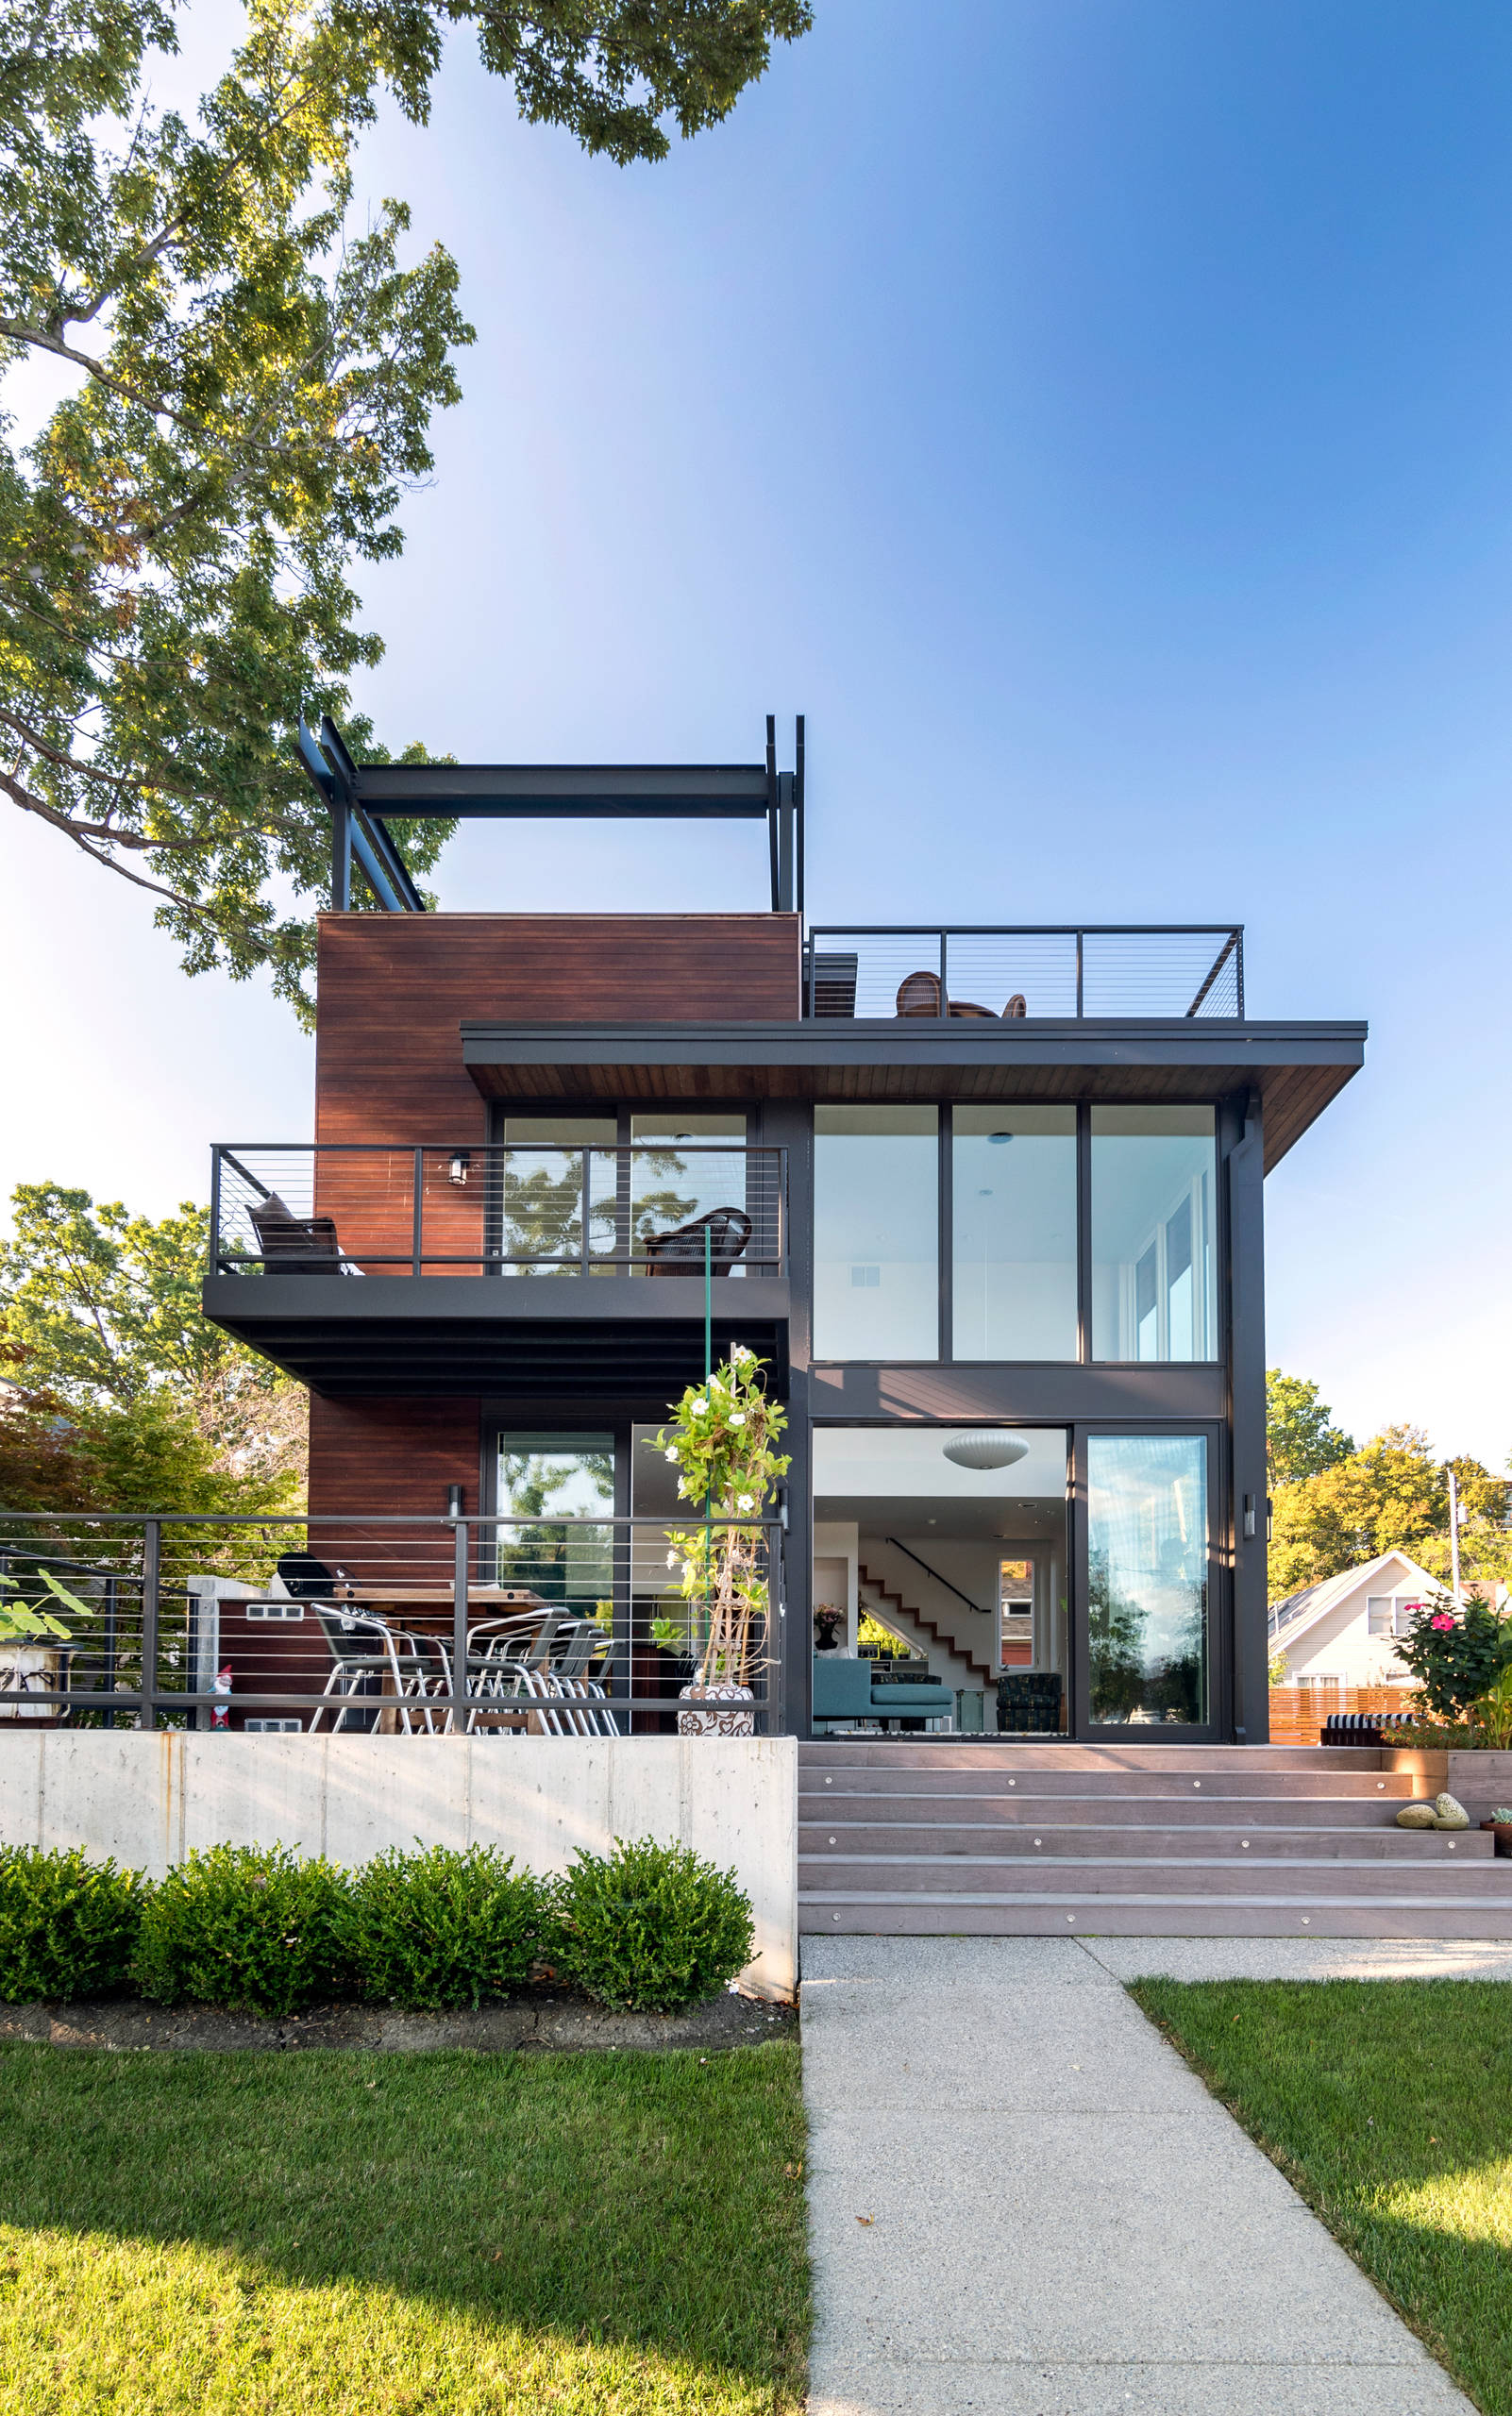 75 Beautiful Small Modern Exterior Home Pictures Ideas December 2020 Houzz